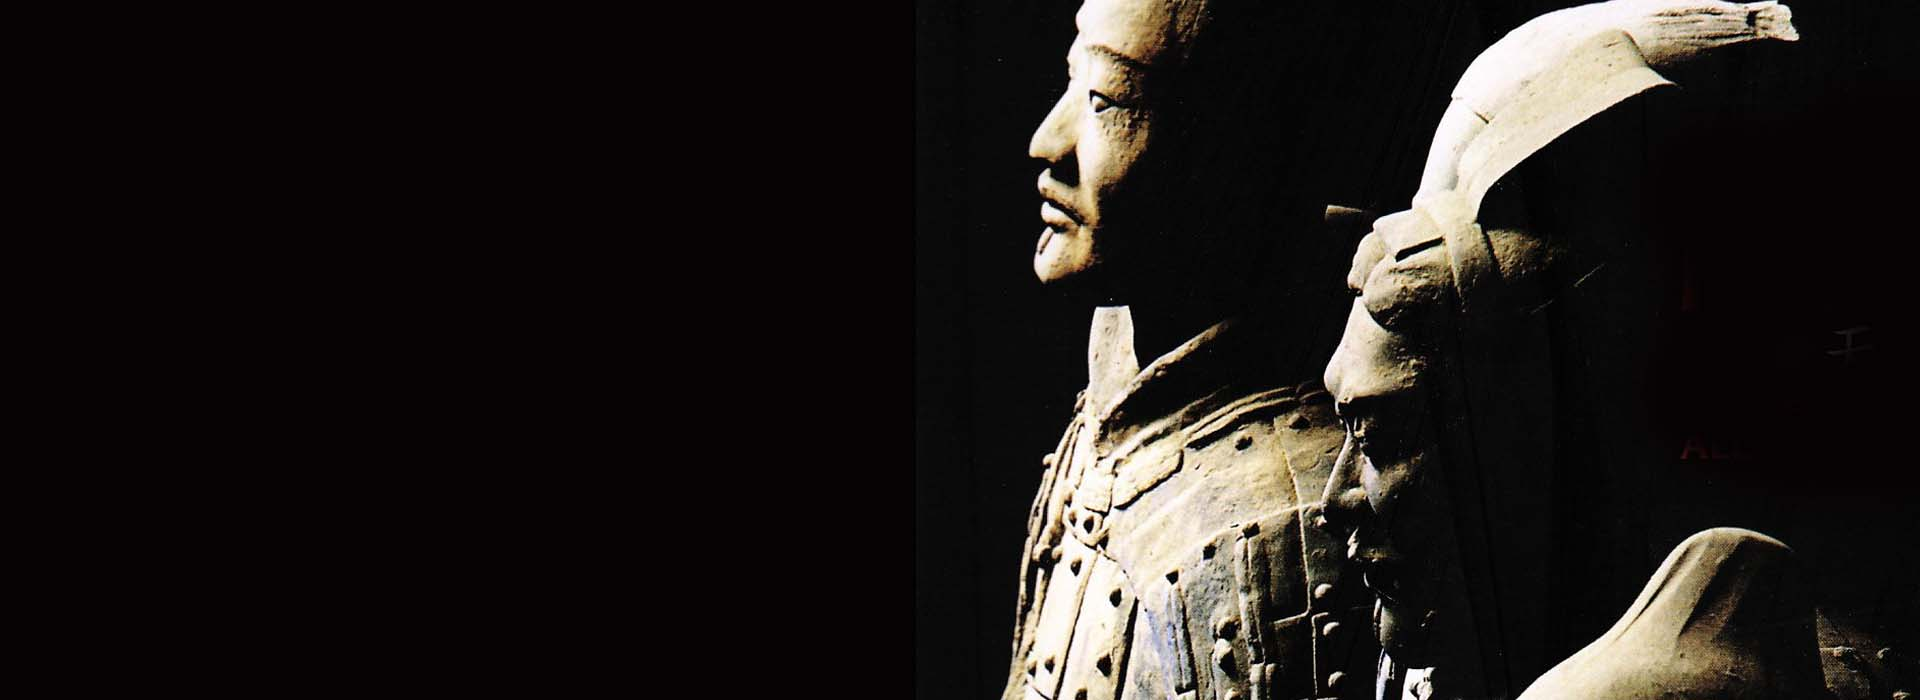 THE BLUE EMPIRE. FROM THE TERRACOTTA ARMY TO THE SILK ROAD